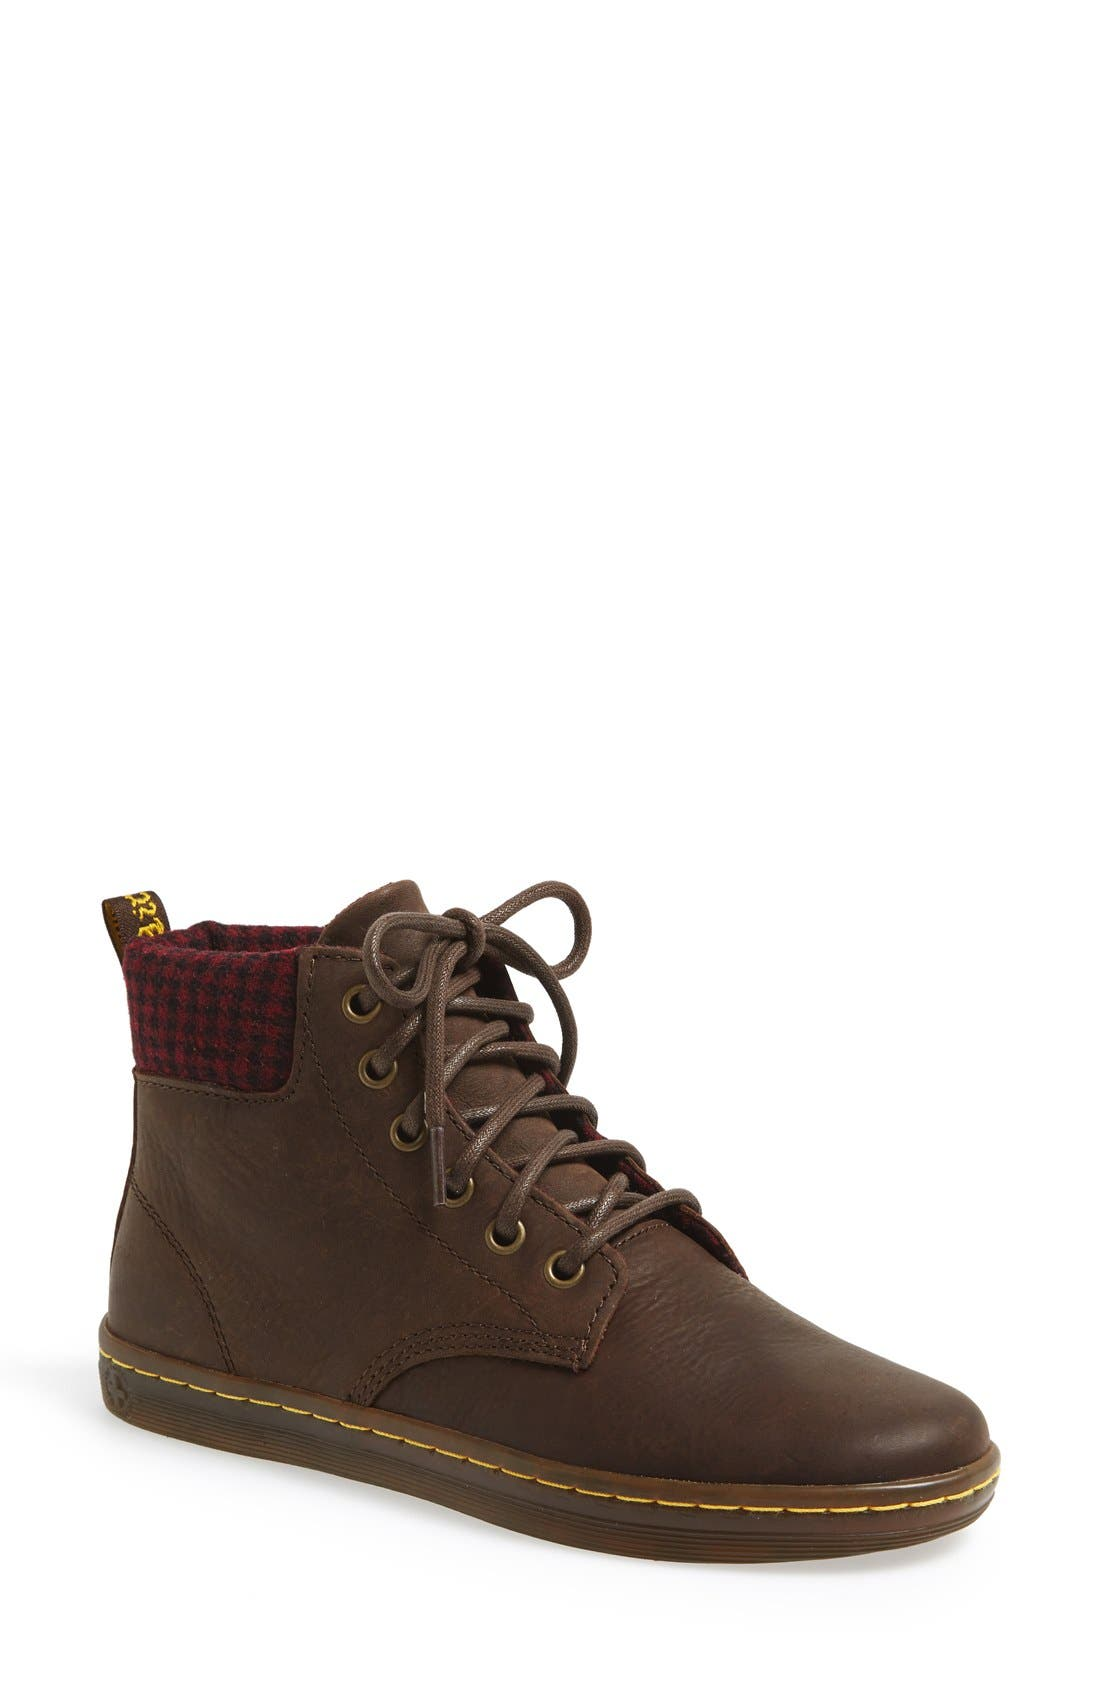 Alternate Image 1 Selected - Dr. Martens 'Maelly' Boot (Women)